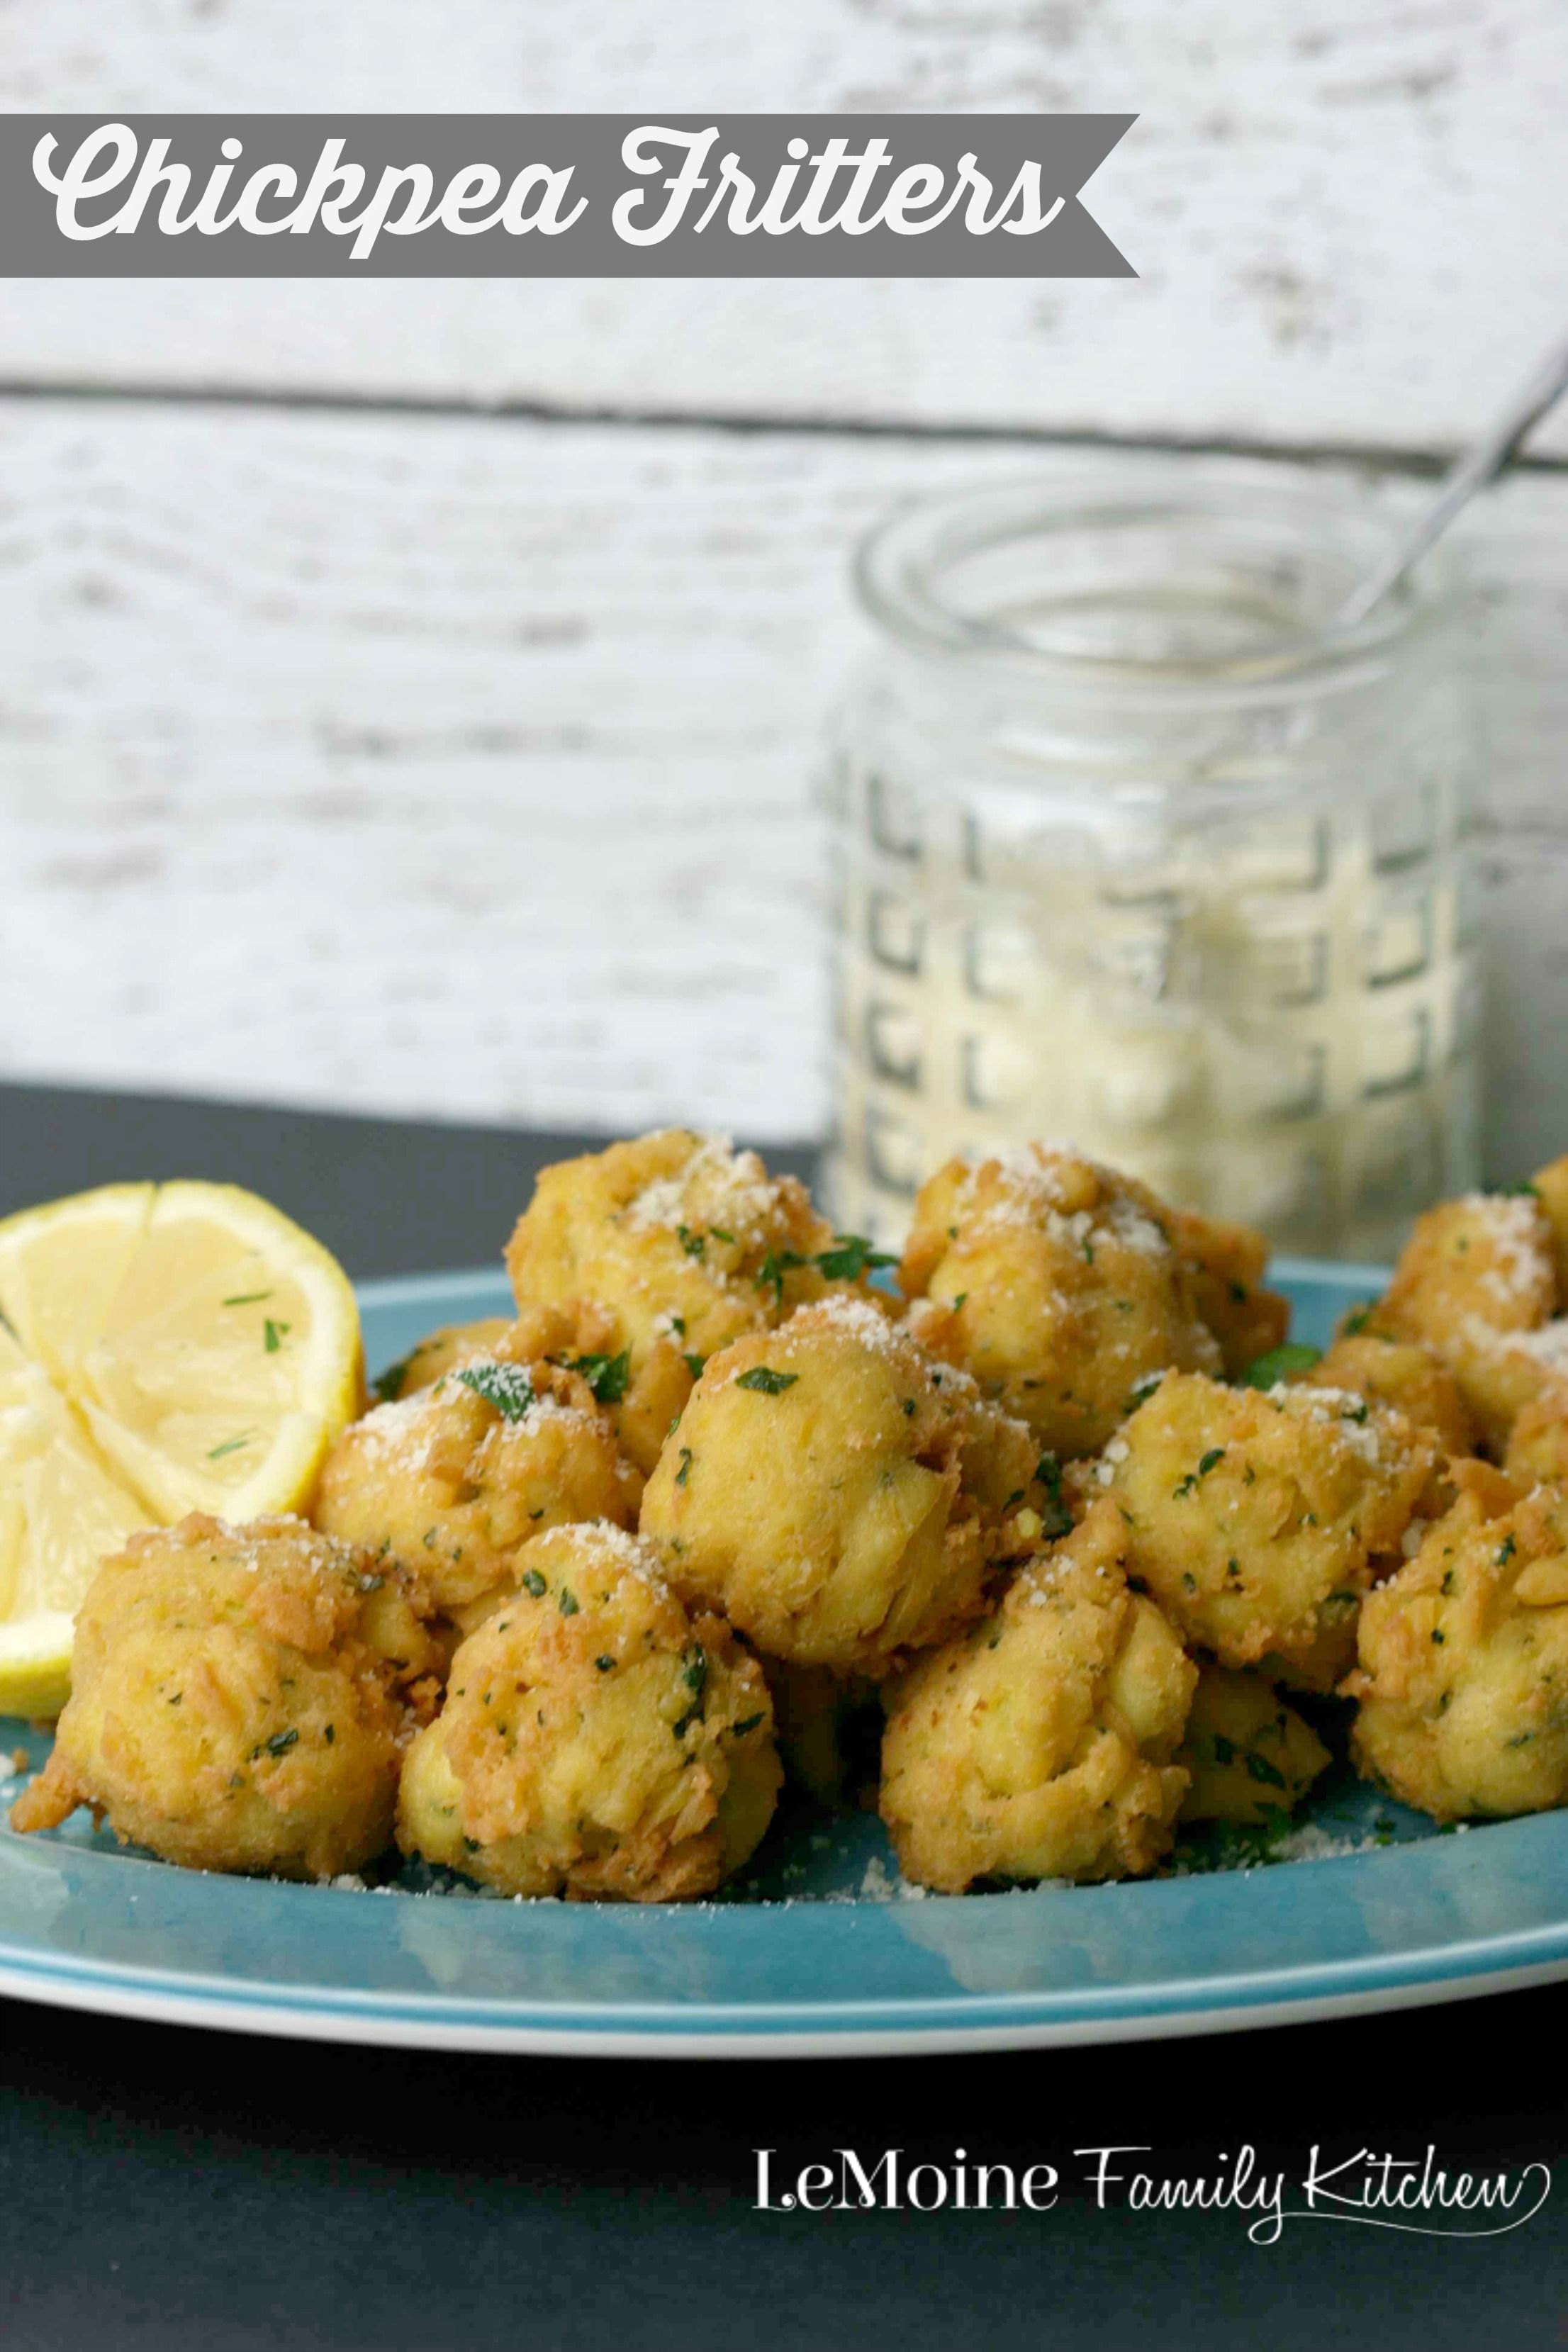 Chickepea Fritters   LeMoine Family Kitchen AKA Panelle. These fritters are light, crispy and so tasty! Great snack, appetizer or side dish!